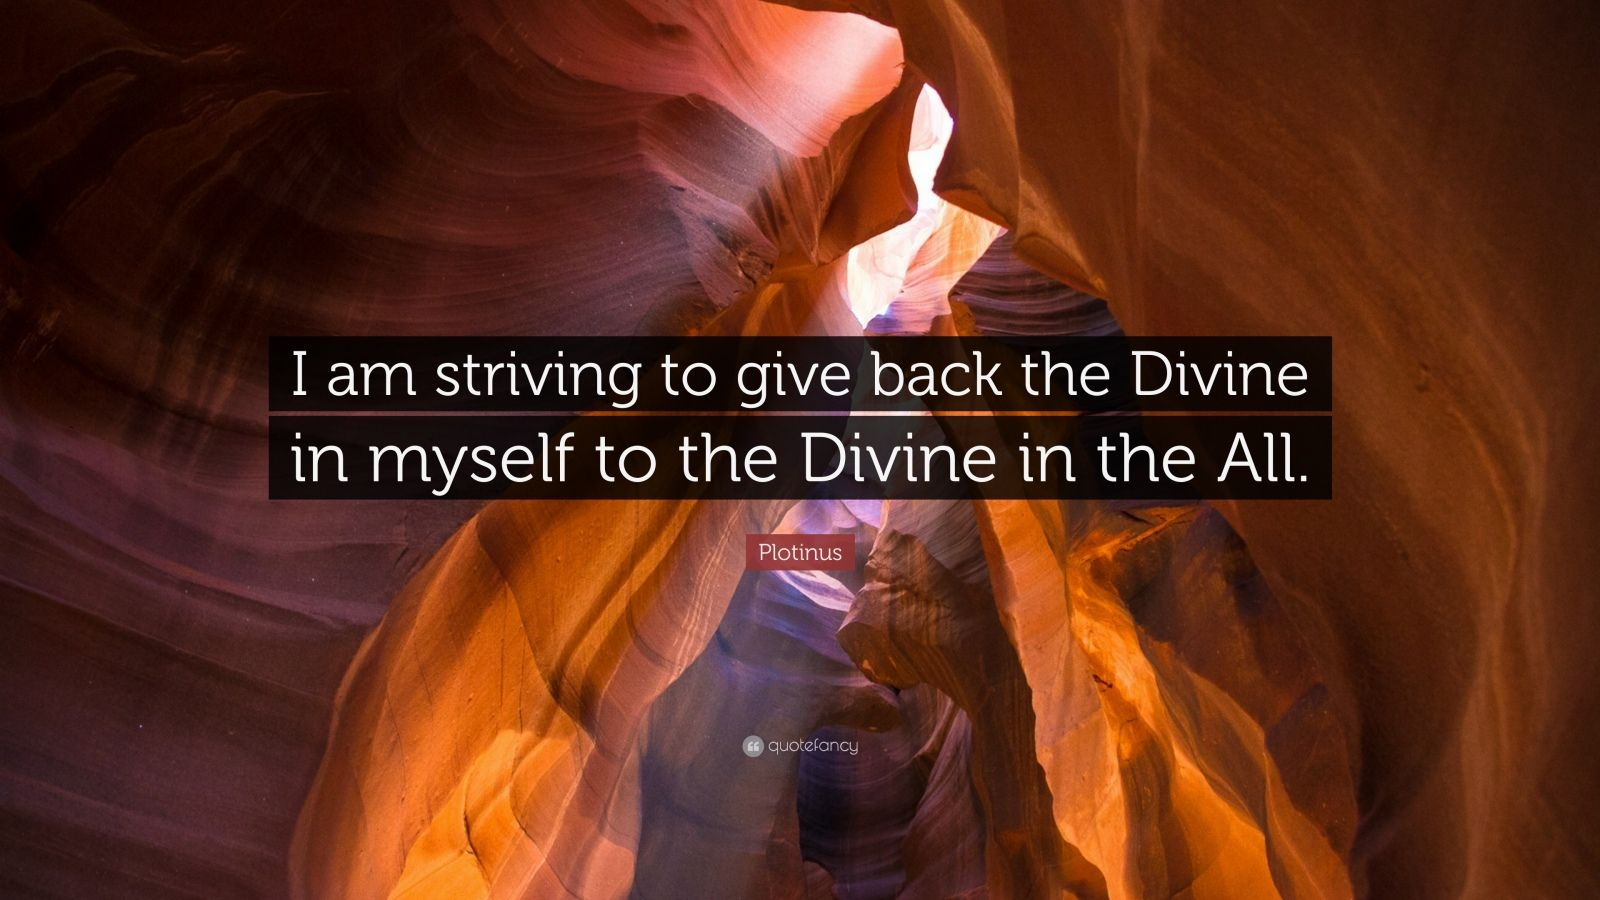 """Plotinus Quote: """"I am striving to give back the Divine in myself to the Divine in the All."""""""